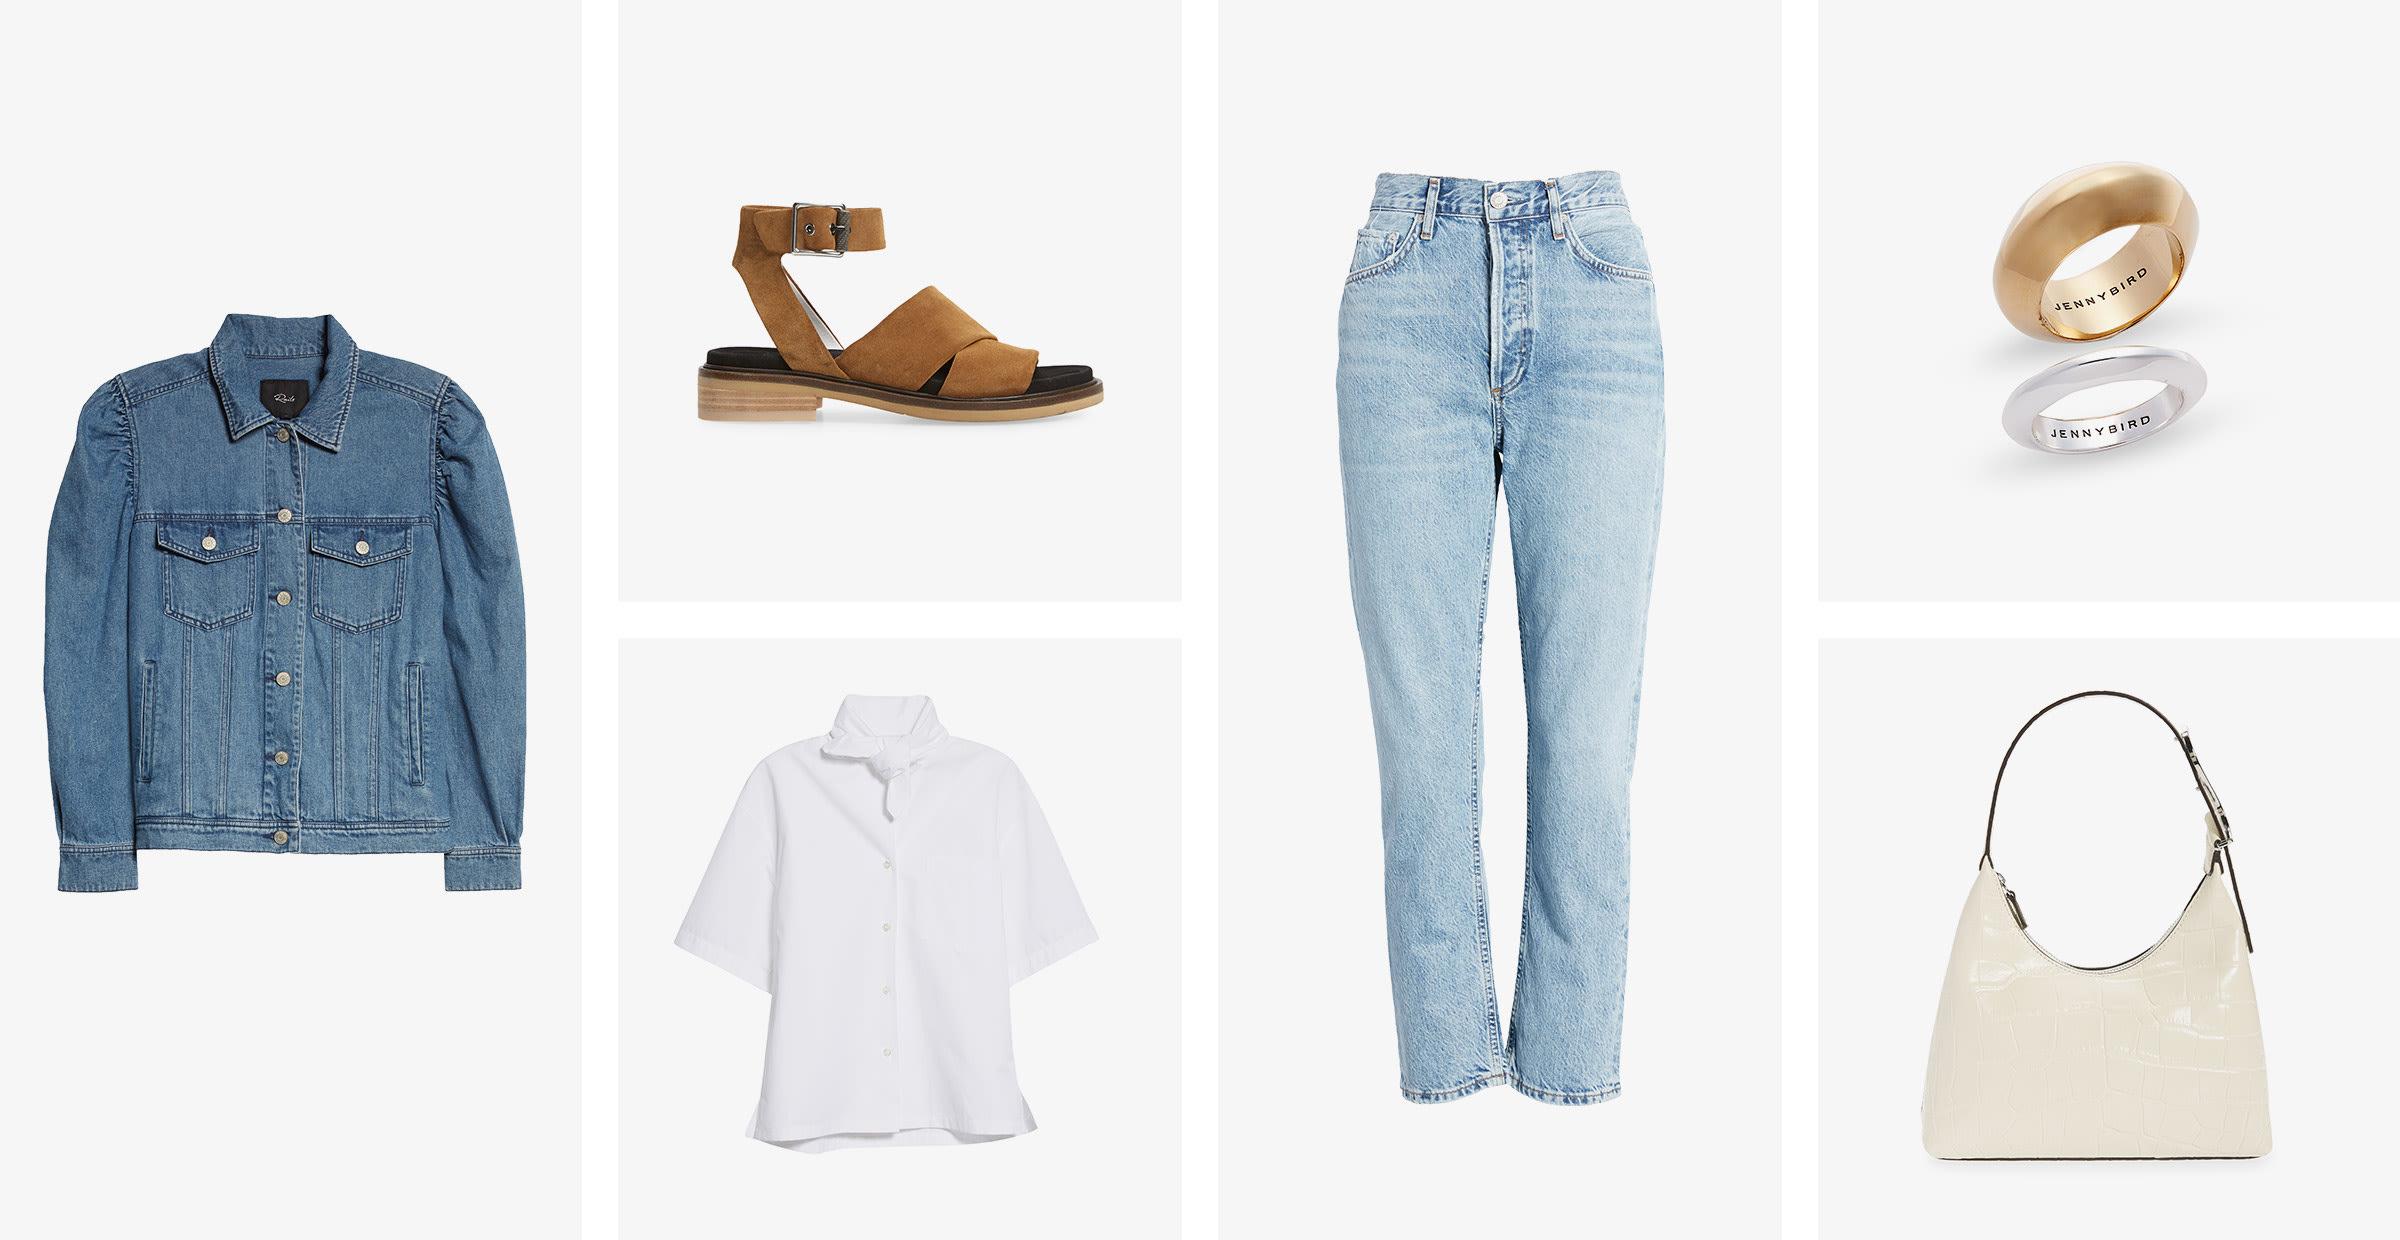 A women's denim jacket, leather sandal, white button-up shirt, light-wash jeans, set of two rings and purple handbag.